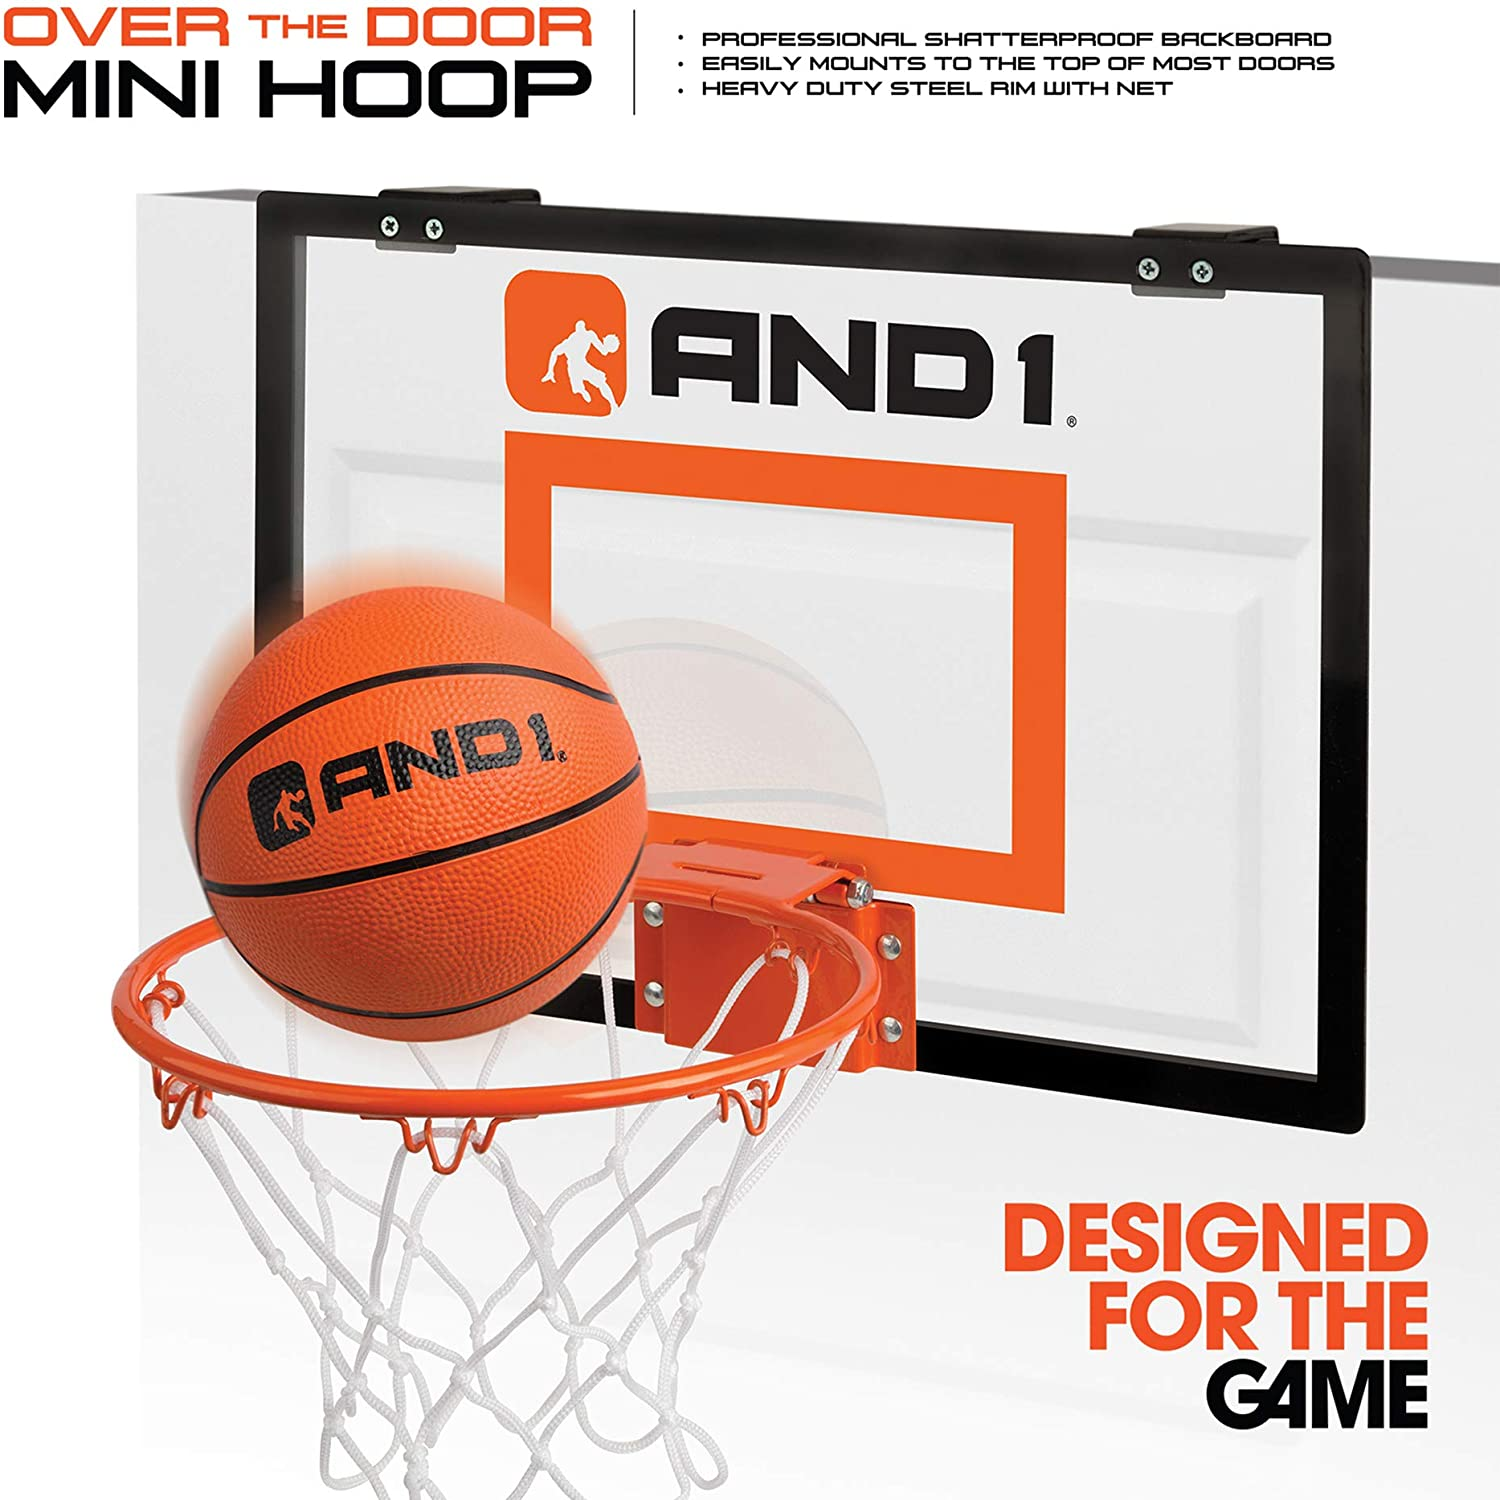 """AND1 Over The Door Mini Hoop: - 18""""x12"""" Easy to Install Portable Basketball Hoop with Steel Rim, Includes 5"""" Mini Basketball, Indoor Game Set for Children and Adults- Clear : Sports & Outdoors"""